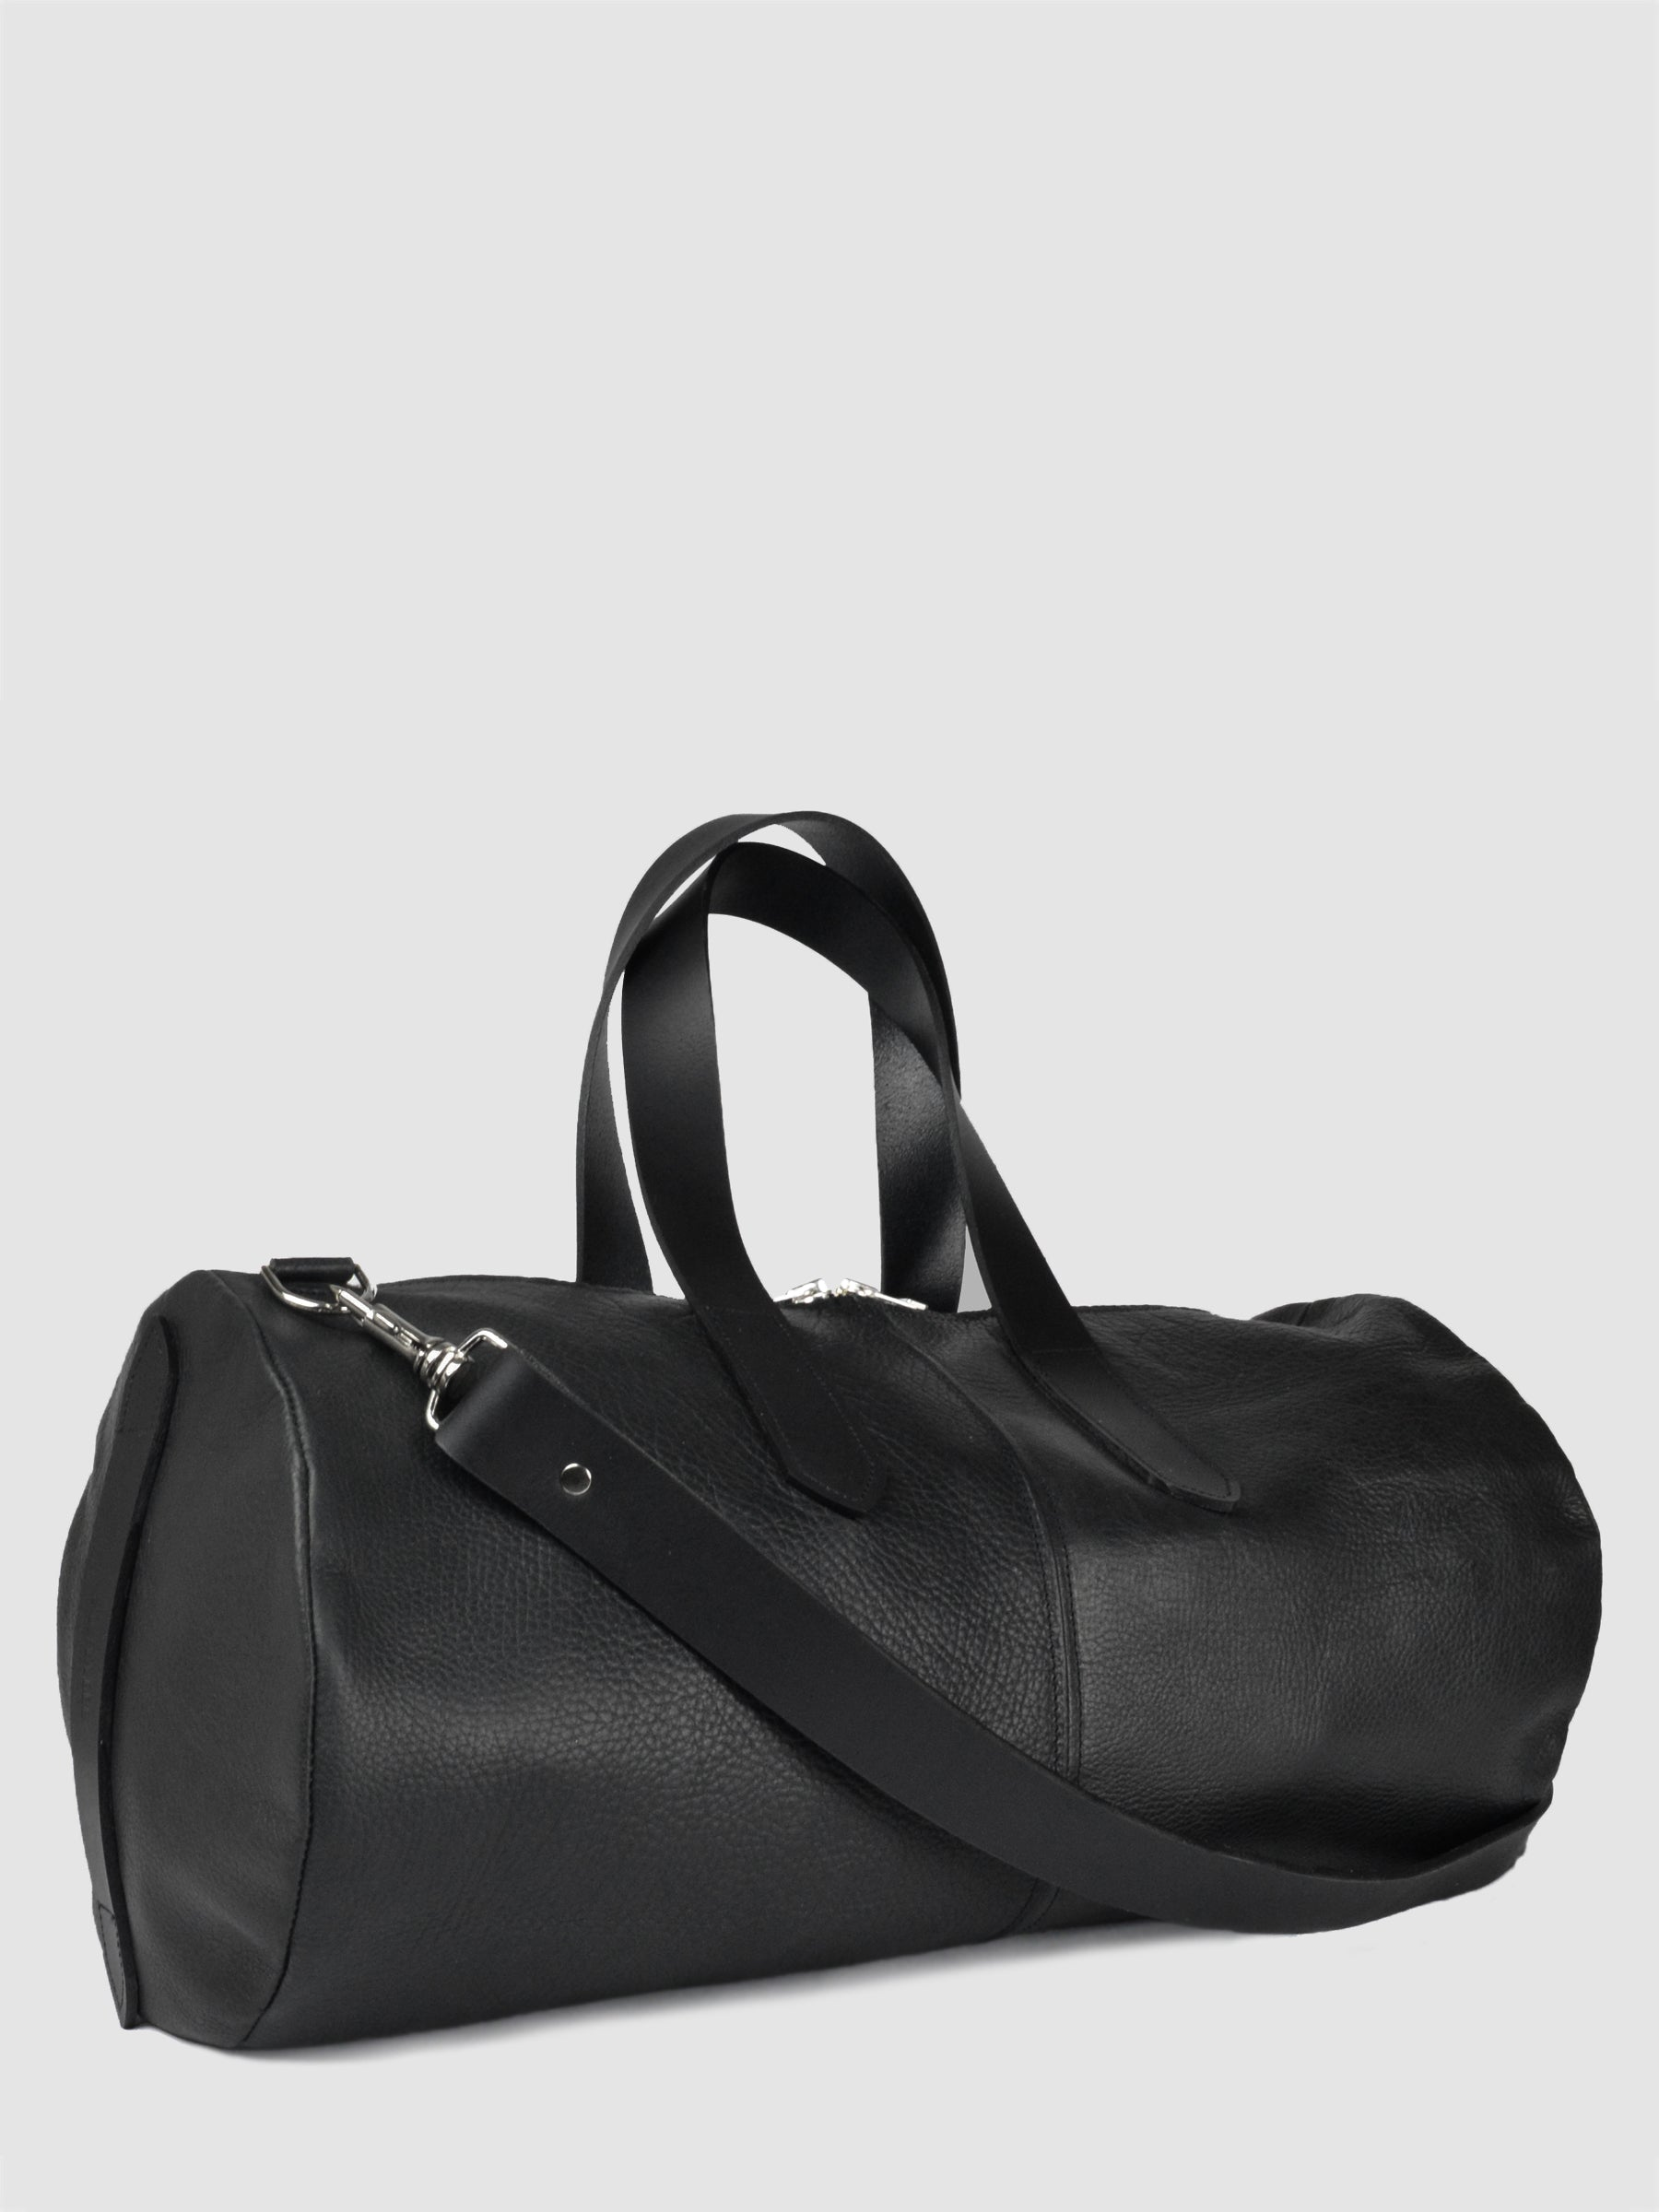 "SONYA LEE Named after our designer's brother. The Douglas duffle features; a side zipper pocket for accessible storage, large top zipper, two twin leather handles, side handle, and extra thick crossbody/shoulder strap. Made from our classic Canadian bison hide. Size: 21"" x 11"" x 11"". Made in Canada."